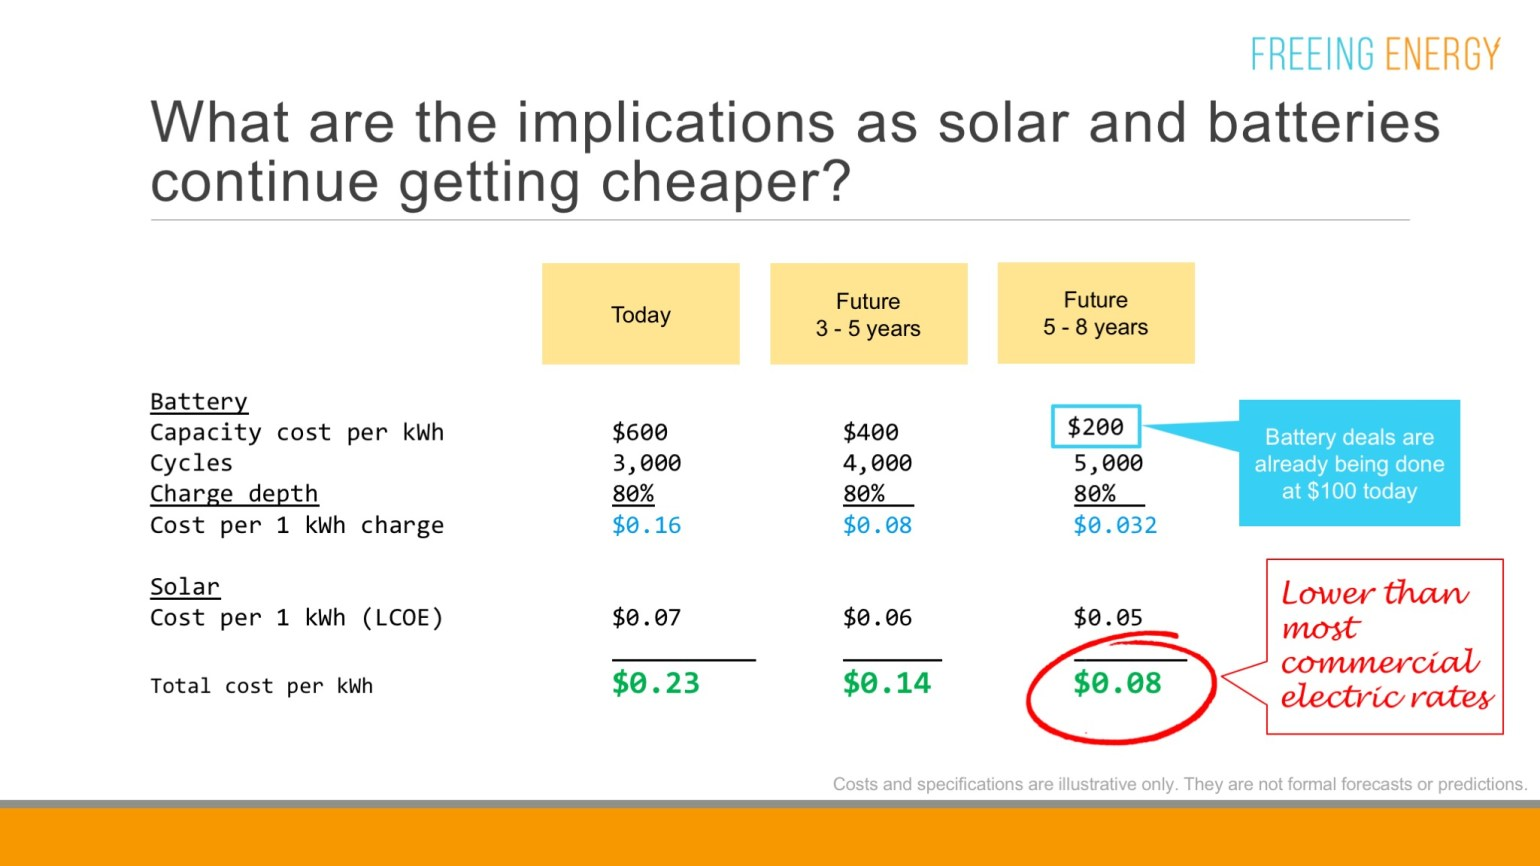 A breakdown of clean energy prices today, in 3-5 years and in 5-8 years